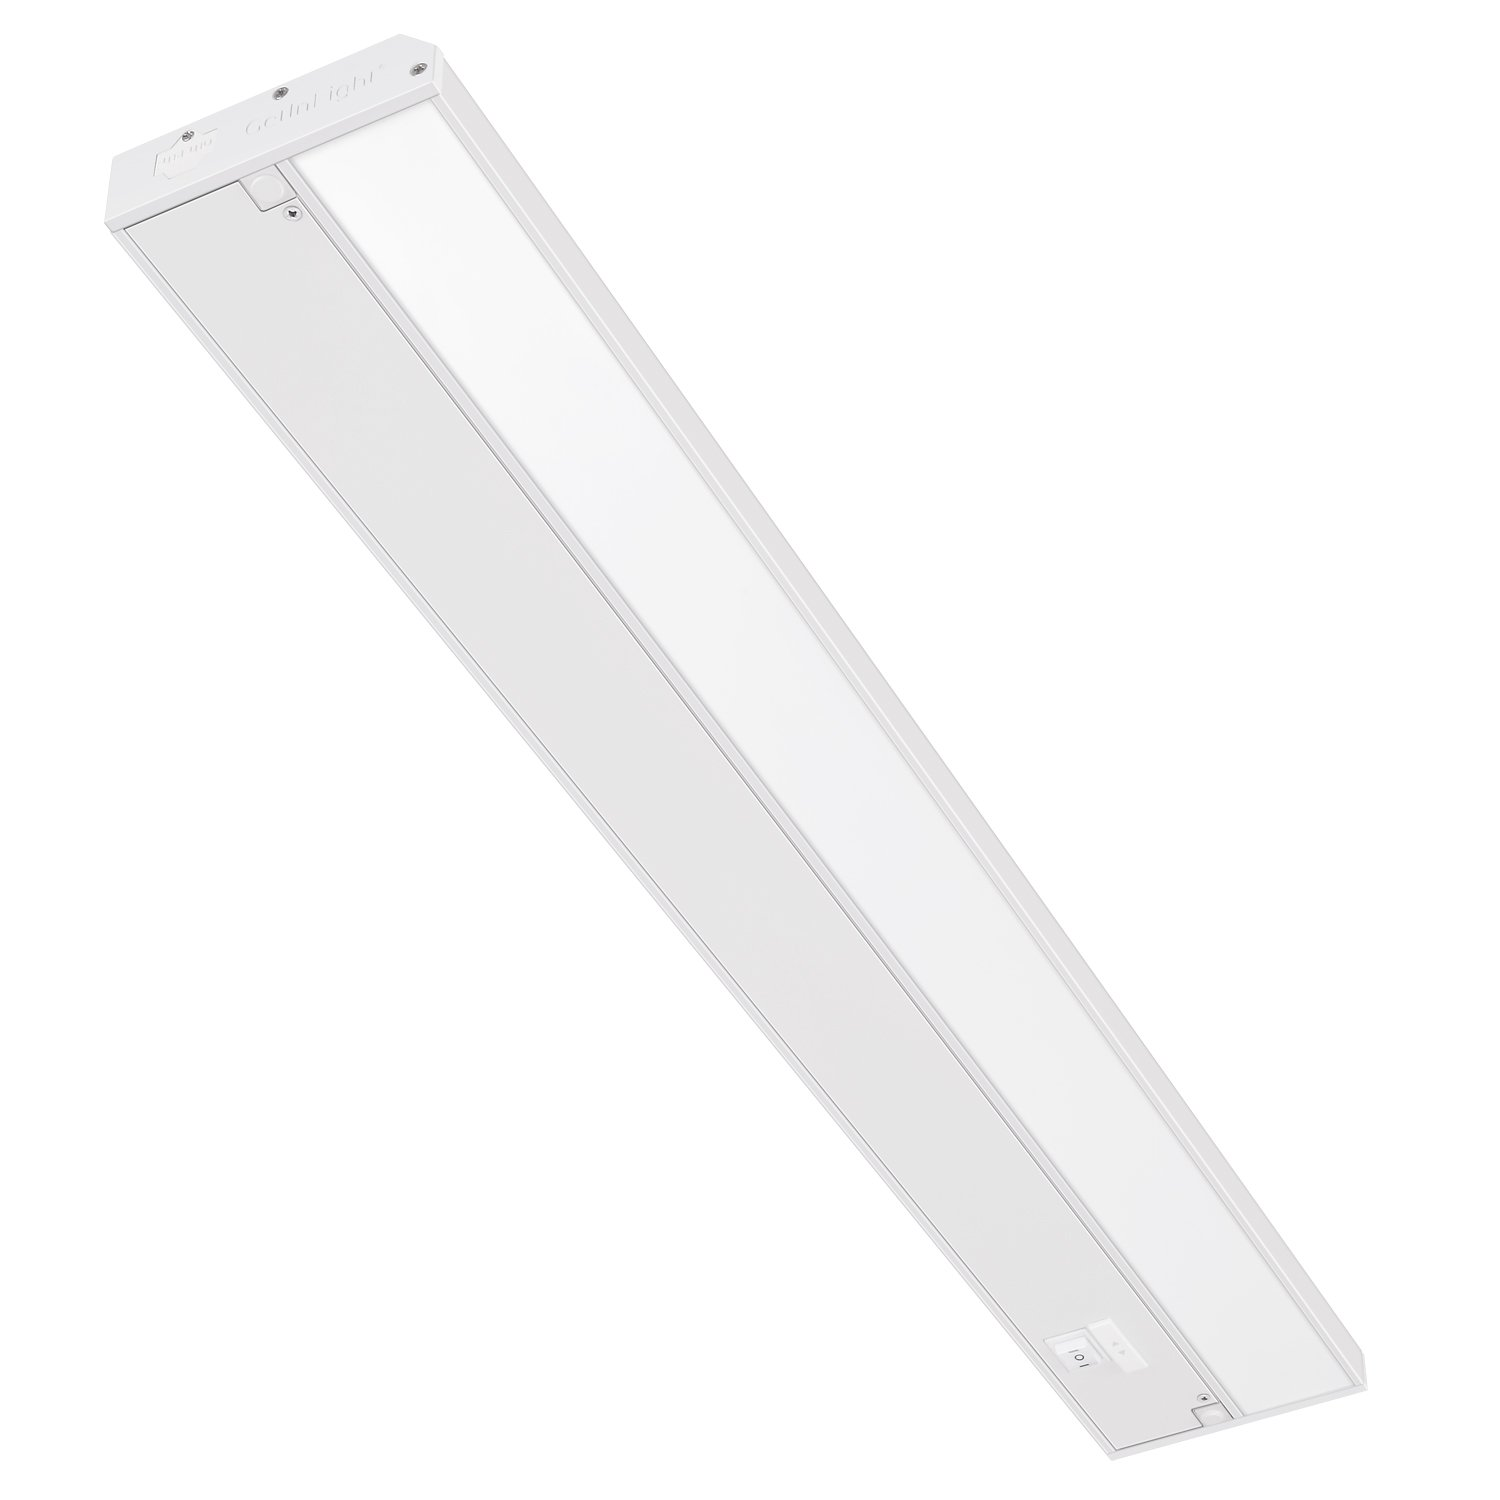 GetInLight 3 Color Levels Dimmable LED Under Cabinet Lighting with ETL Listed, Warm White 2700K , Soft White 3000K , Bright White 4000K , White Finished, 24-inch, IN-0210-3